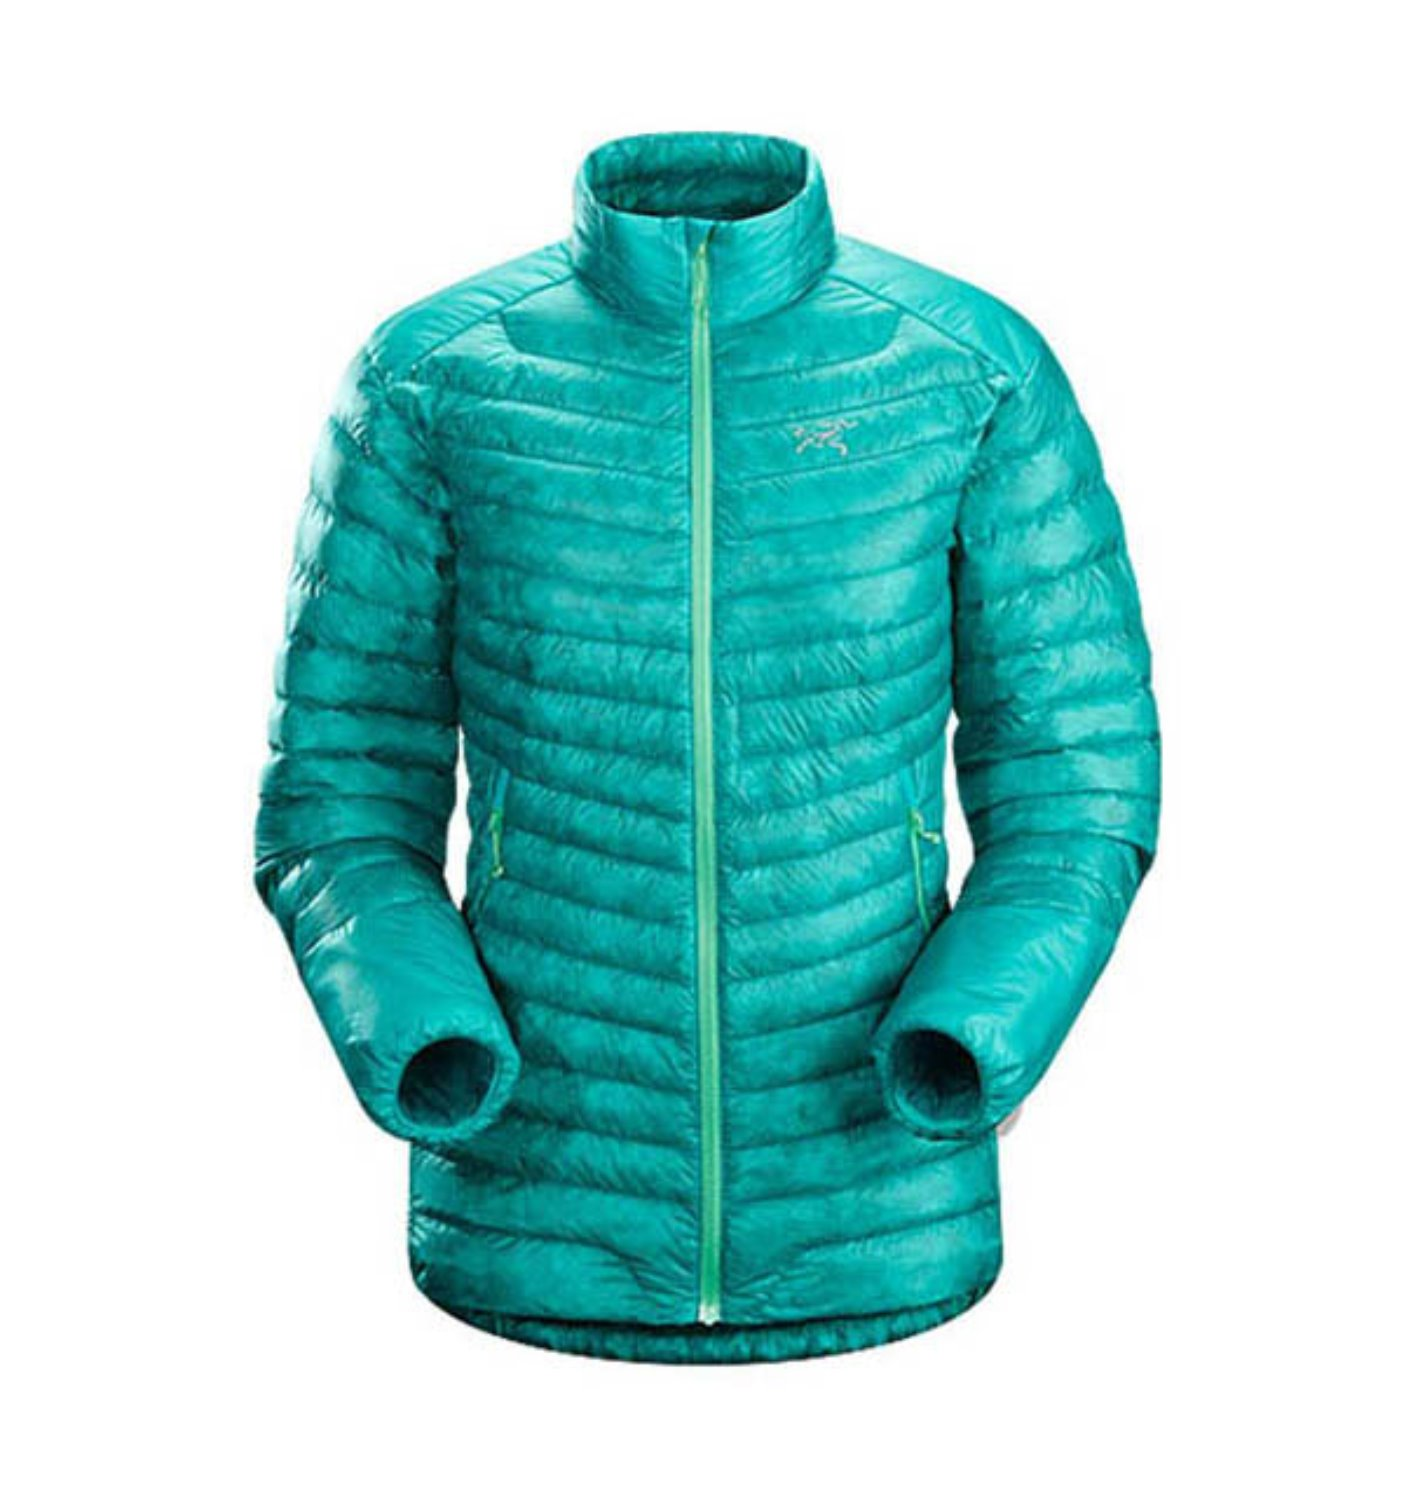 Cerium SL Jacket Women's(Patina Teal)